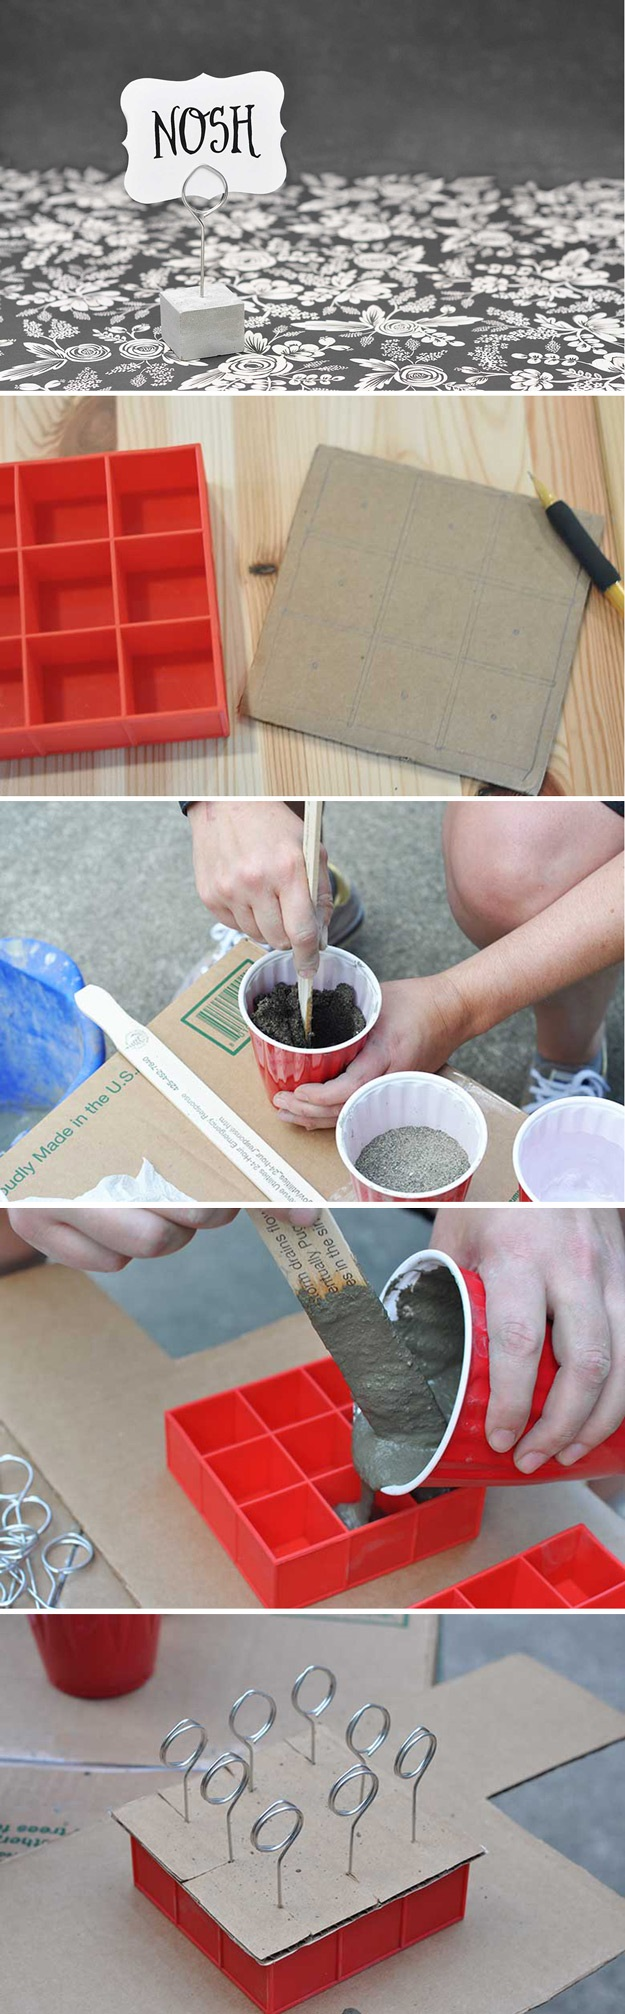 7 fun diy projects to learn various other uses of ice tray for Small concrete projects